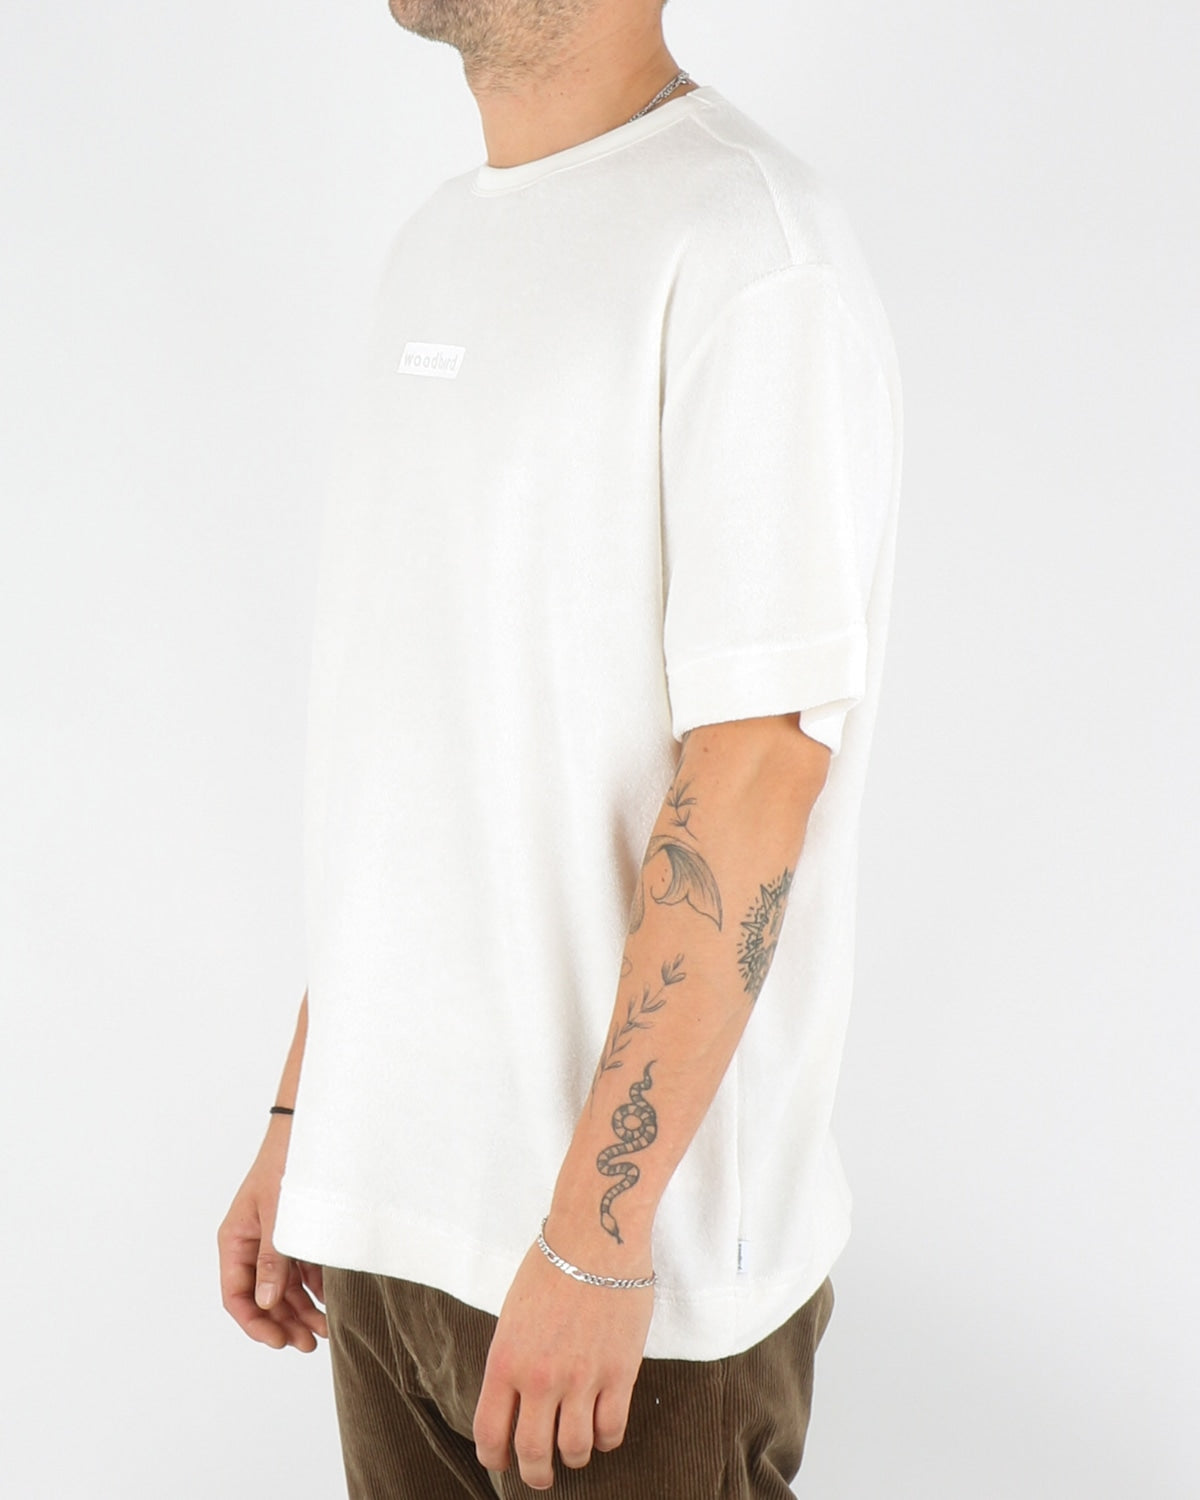 woodbird_poxy box tee_white_2_3